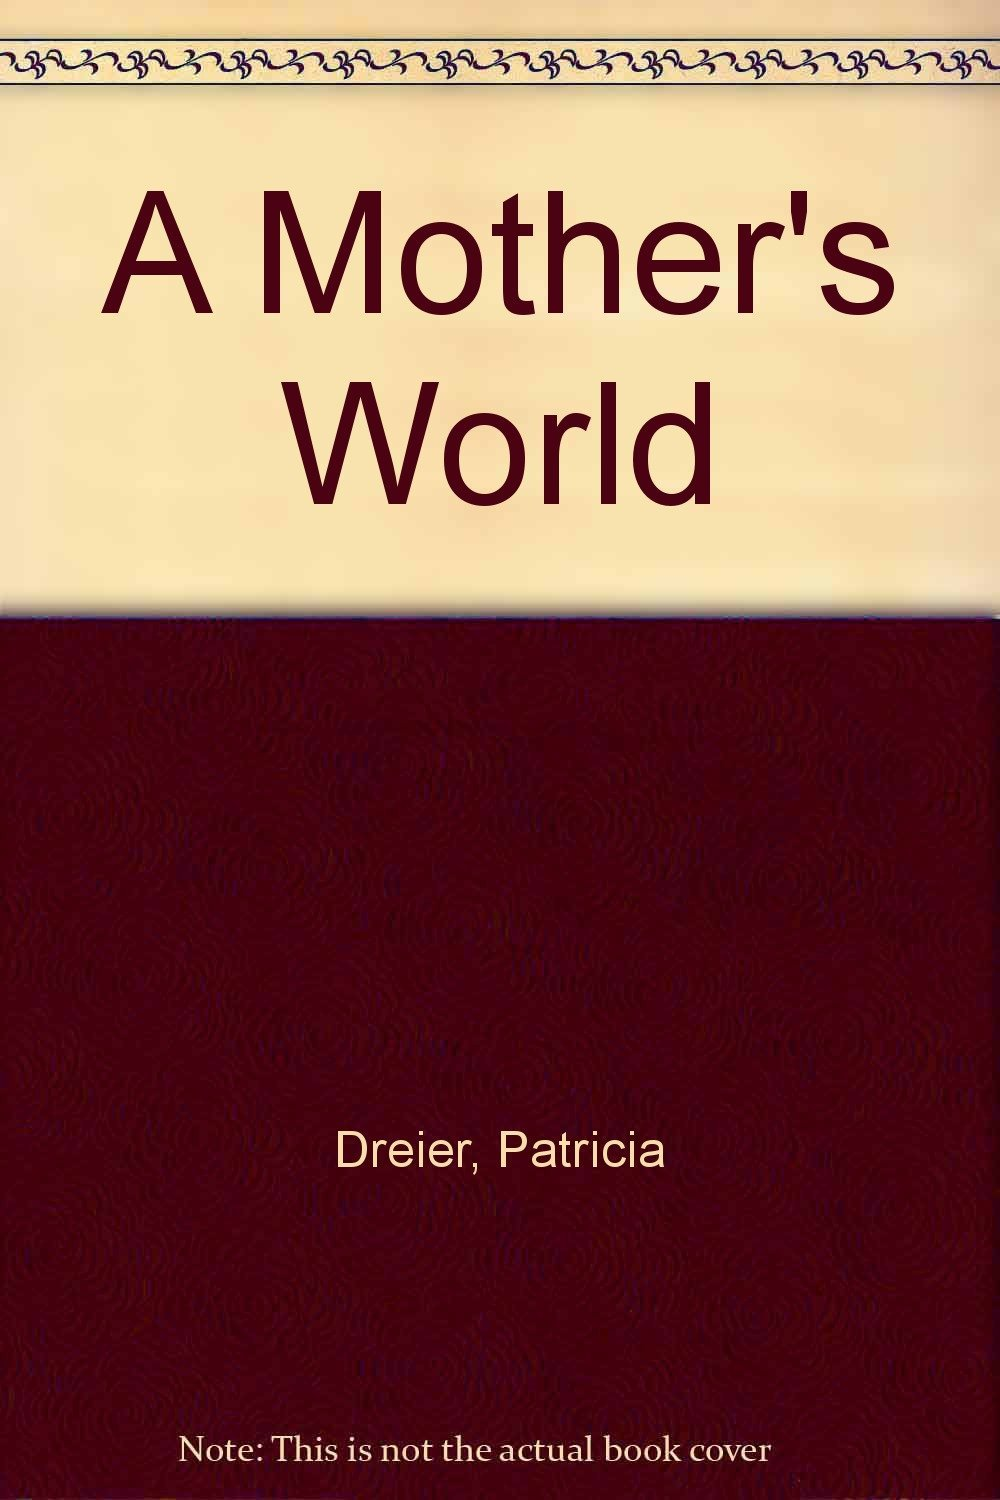 A Mother's World By Patricia Dreier